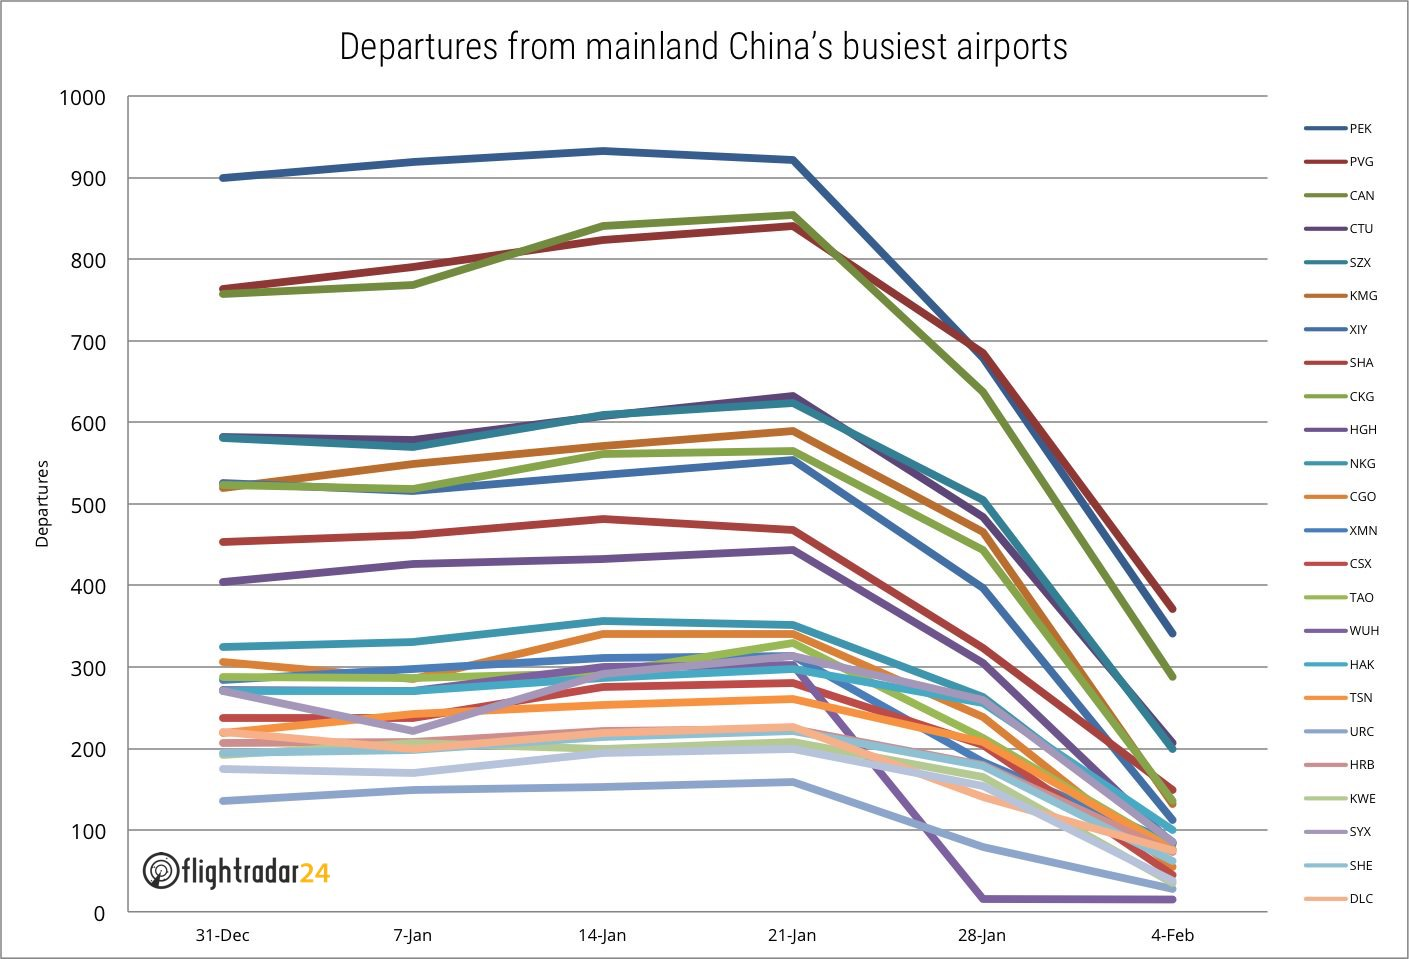 Daily departures from mainland China's 25 busiest airports since 31 December